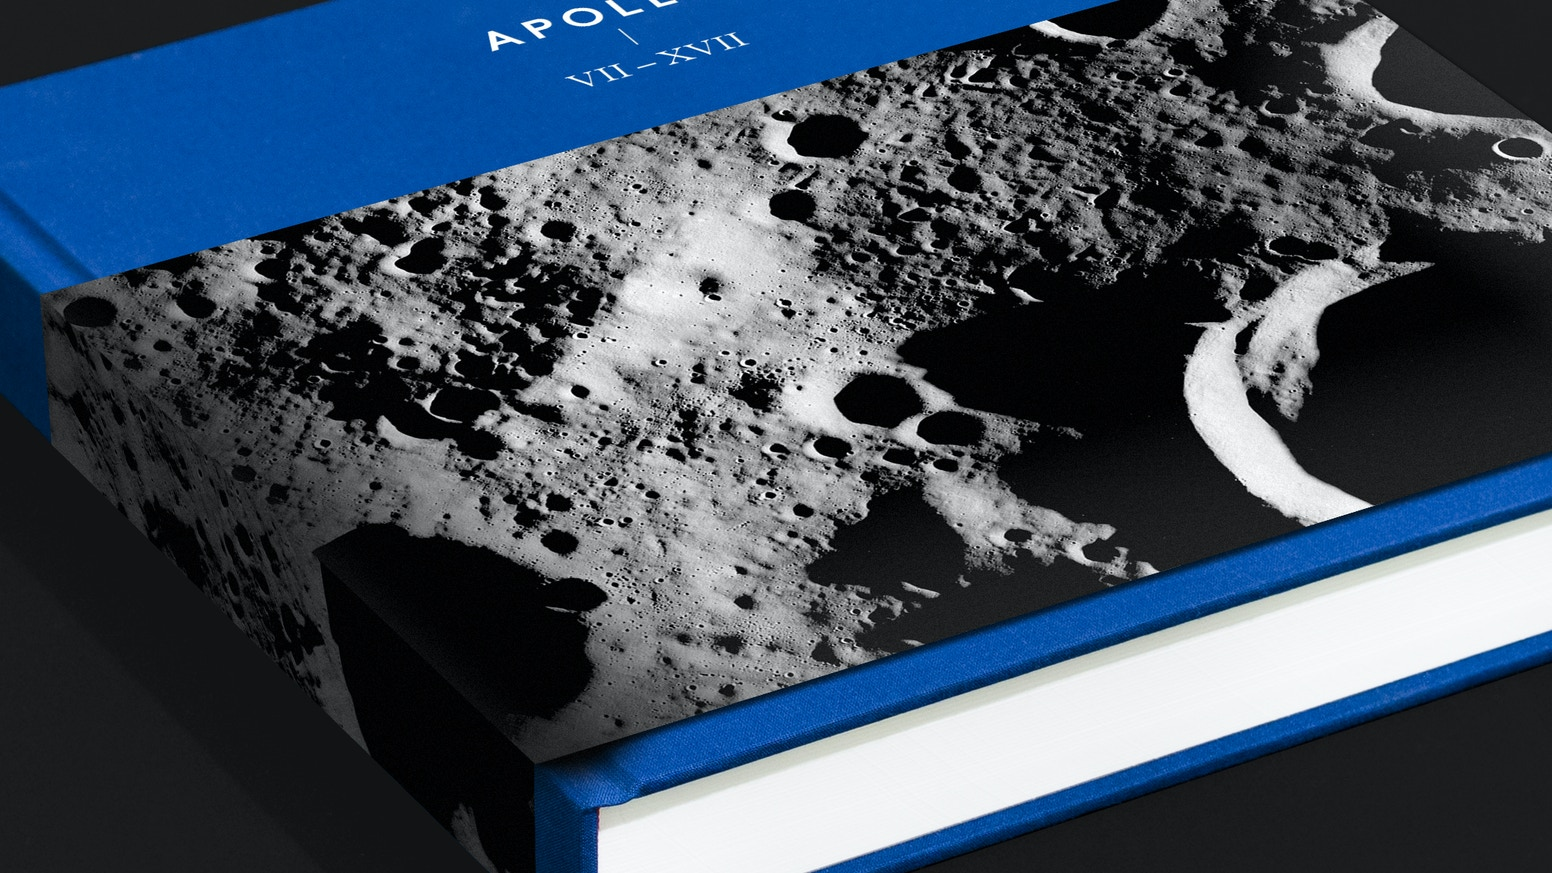 A stunning coffee table book that encapsulates the photographs by some of history's most iconic photographers — the Apollo astronauts.